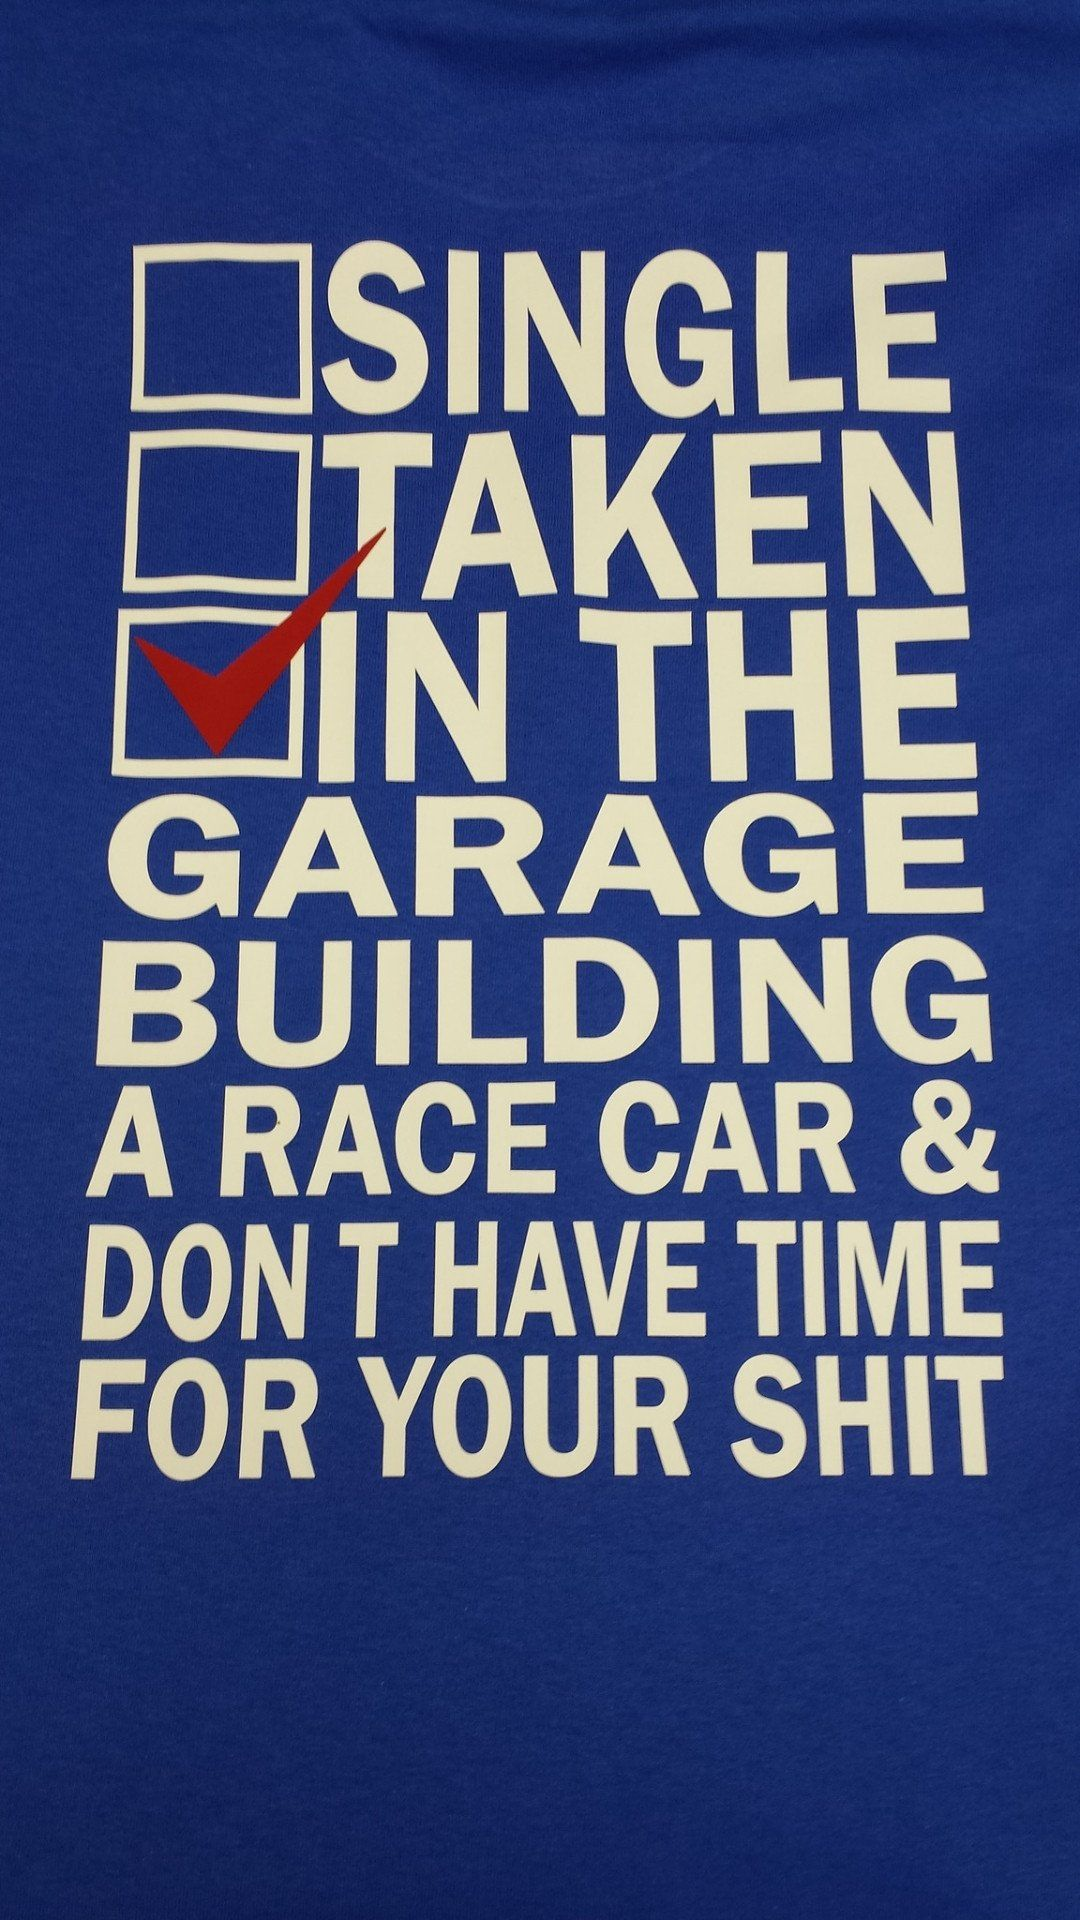 Race Car Quotes Garage Tshirt For Race Cars  Cars Car Humor And Humor